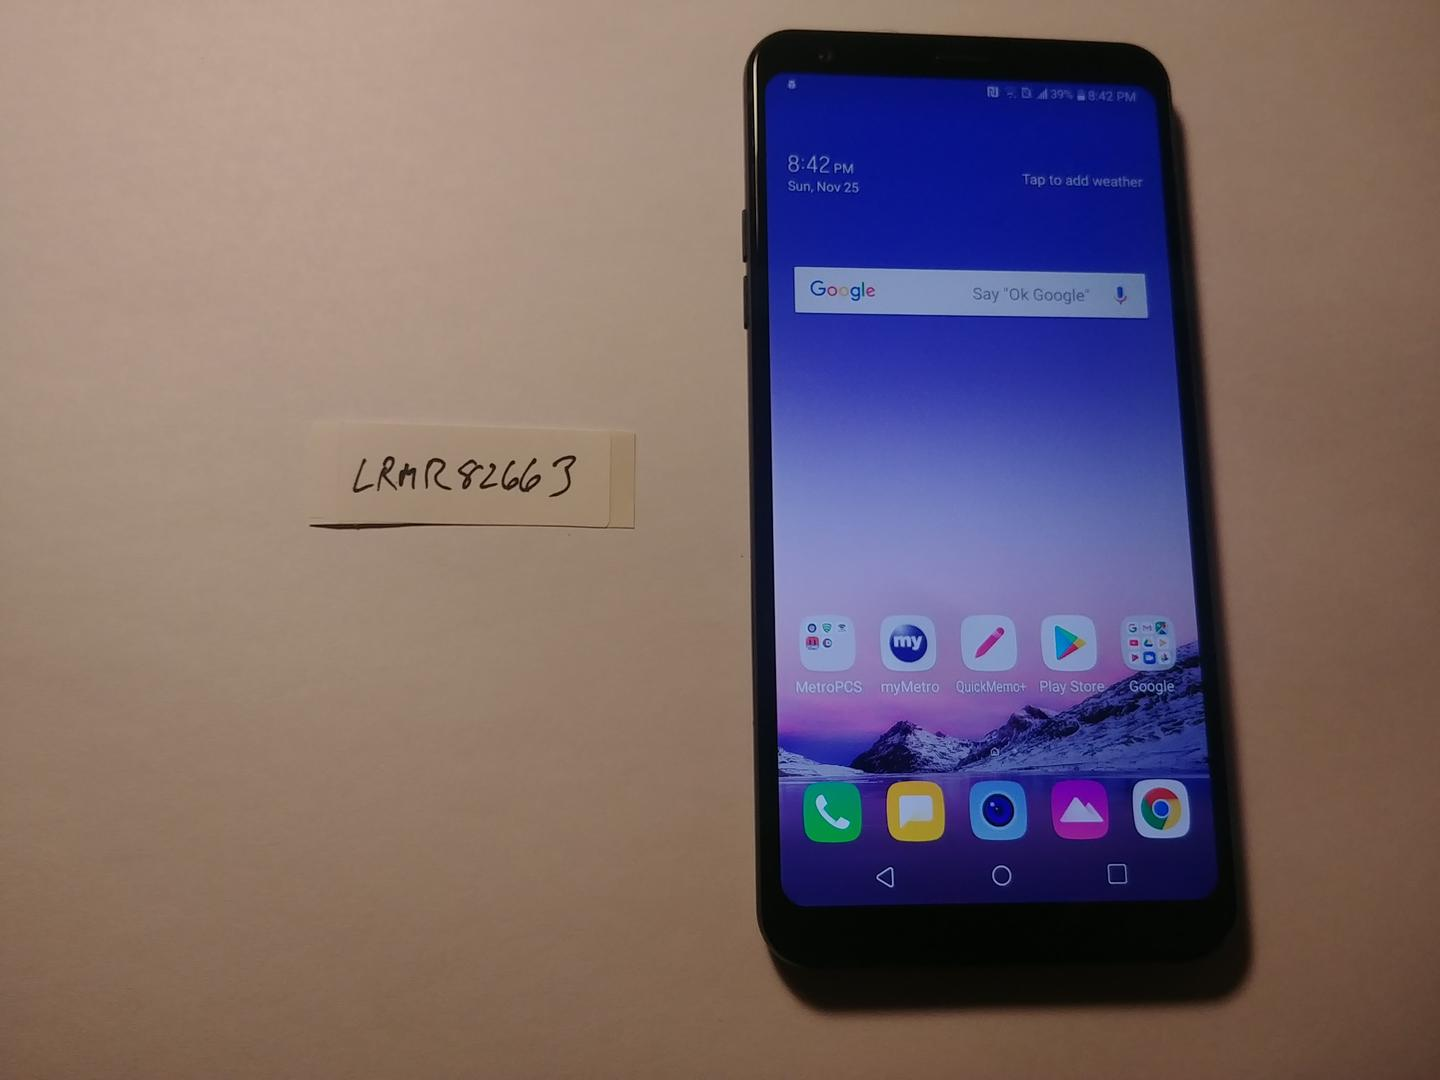 LG Stylo 4 (Metro PCS) [Q710MS] - Black, 32 GB, 2 GB